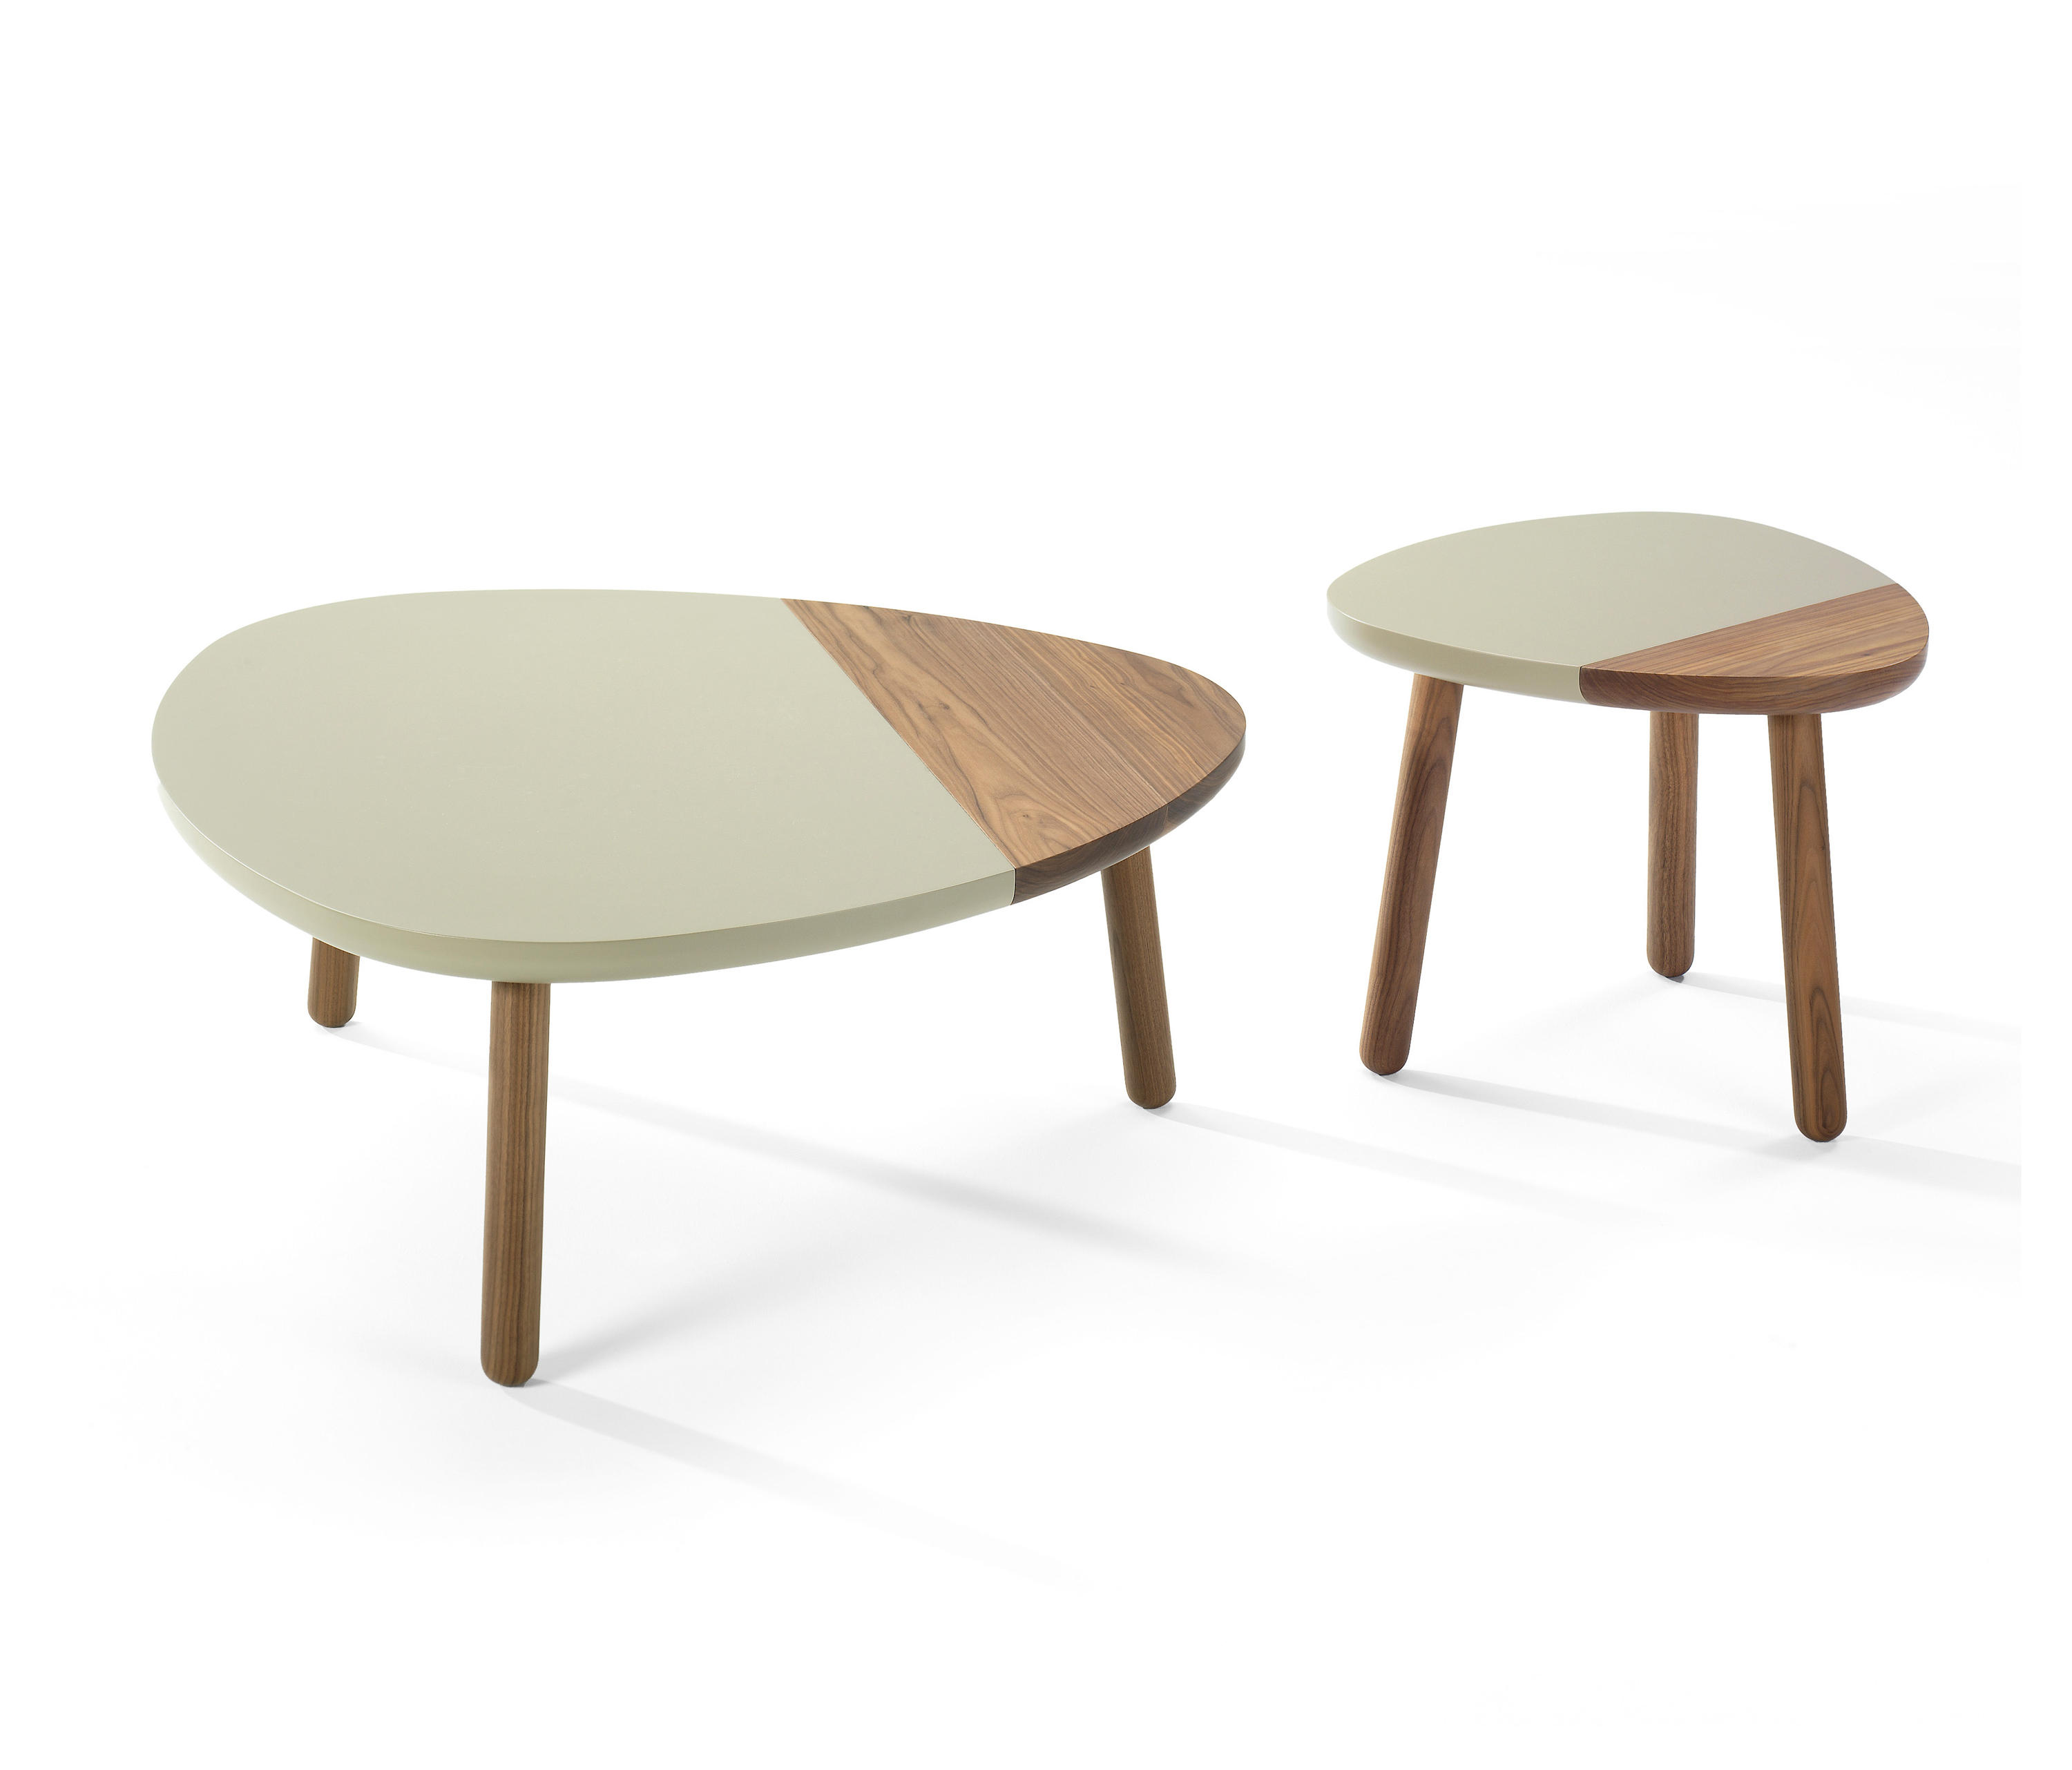 Cami coffee table tavolini salotto kendo mobiliario - Kendo mobiliario ...